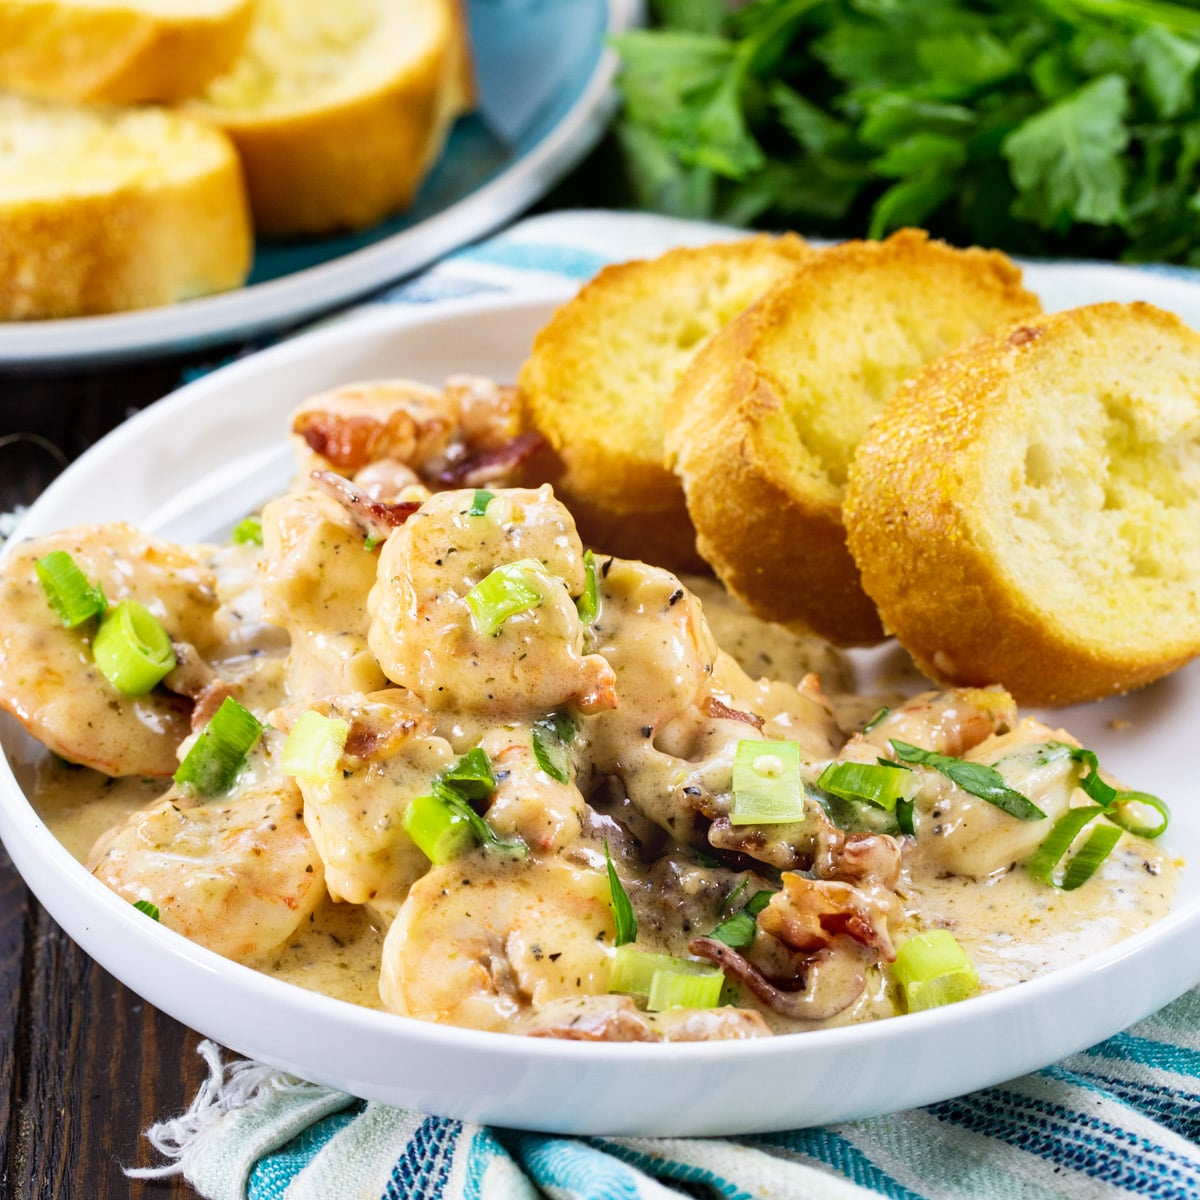 Garlic Shrimp with Creamy Parmesan Sauce with toasted baguette slices on a plate.